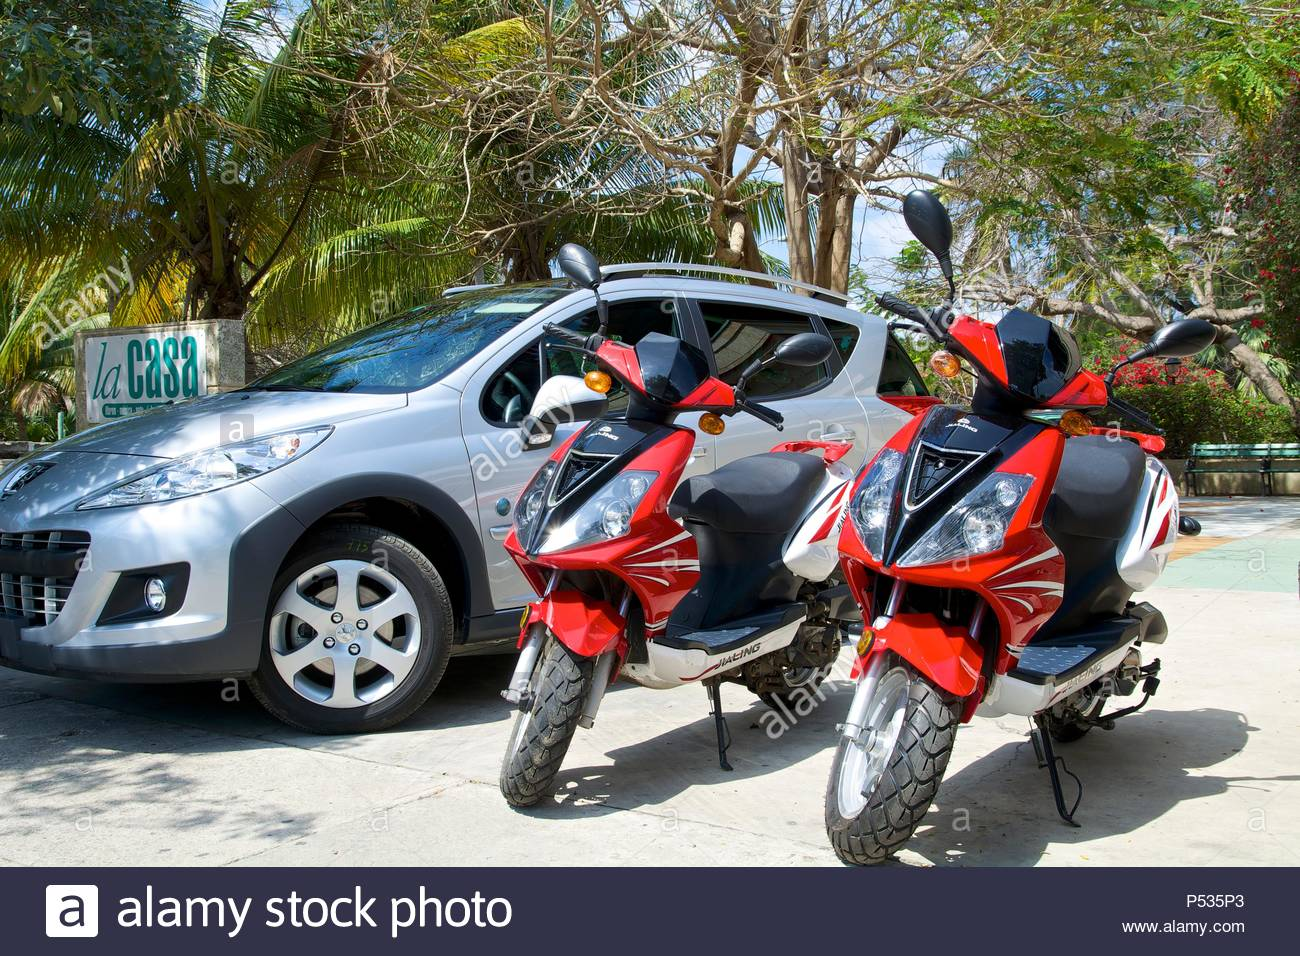 Moped And Car Rental Varadero Matanzas Province Cuba Stock Photo